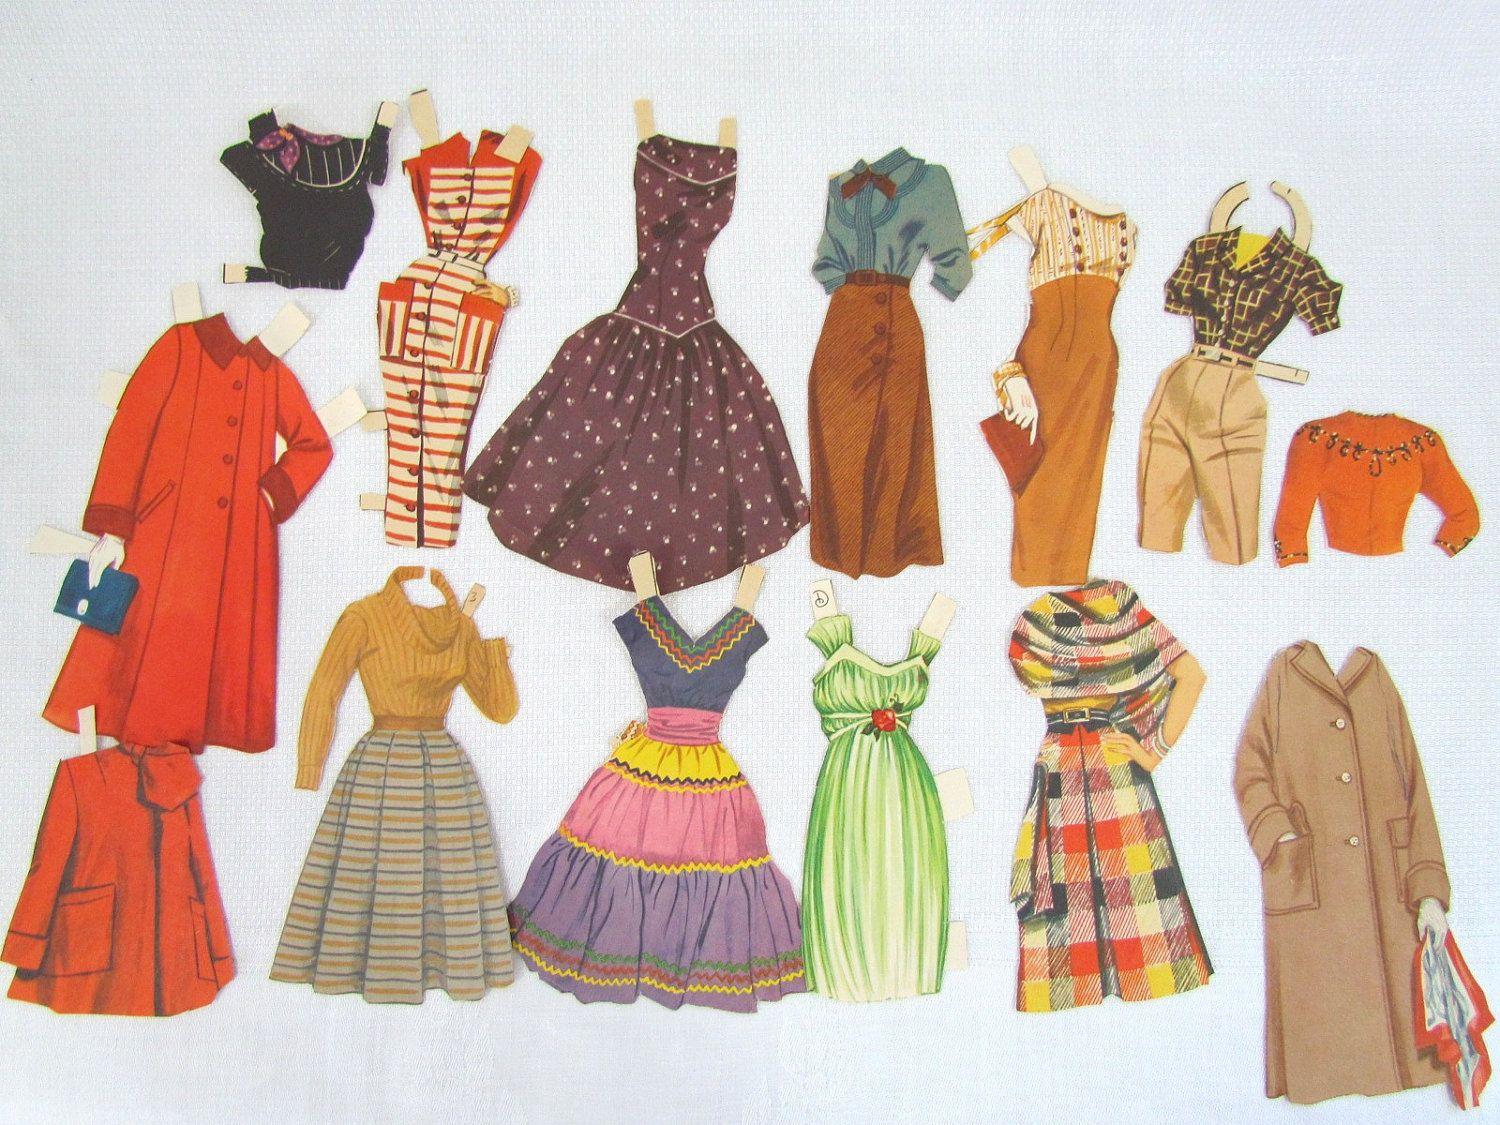 Image detail for -Paper Doll Clothing 1940's Dresses and by VintagePolkaDotcom